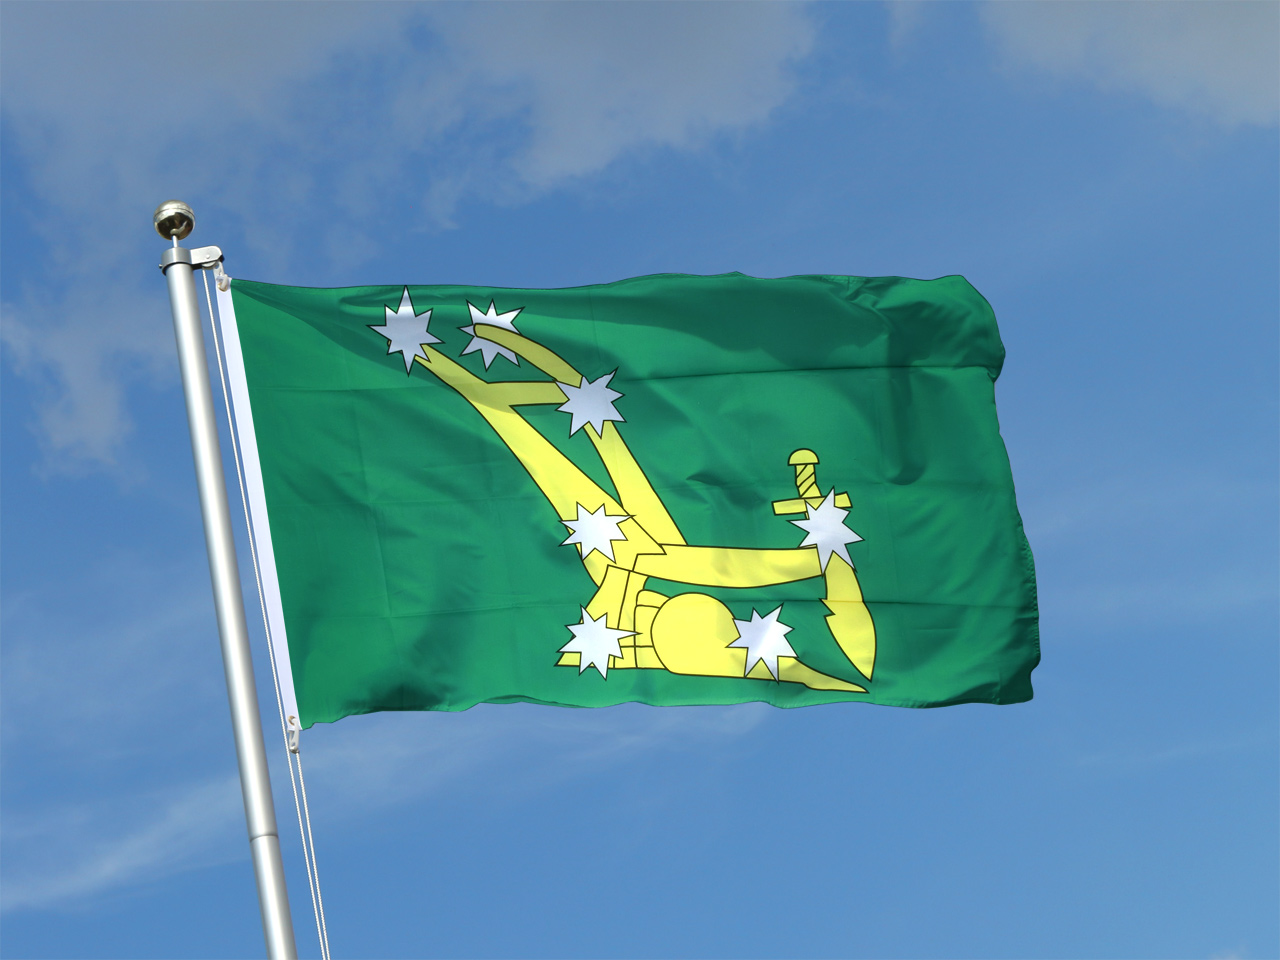 This flag (known as the Plough in the Stars) became a symbol of Irish nationalism and unity